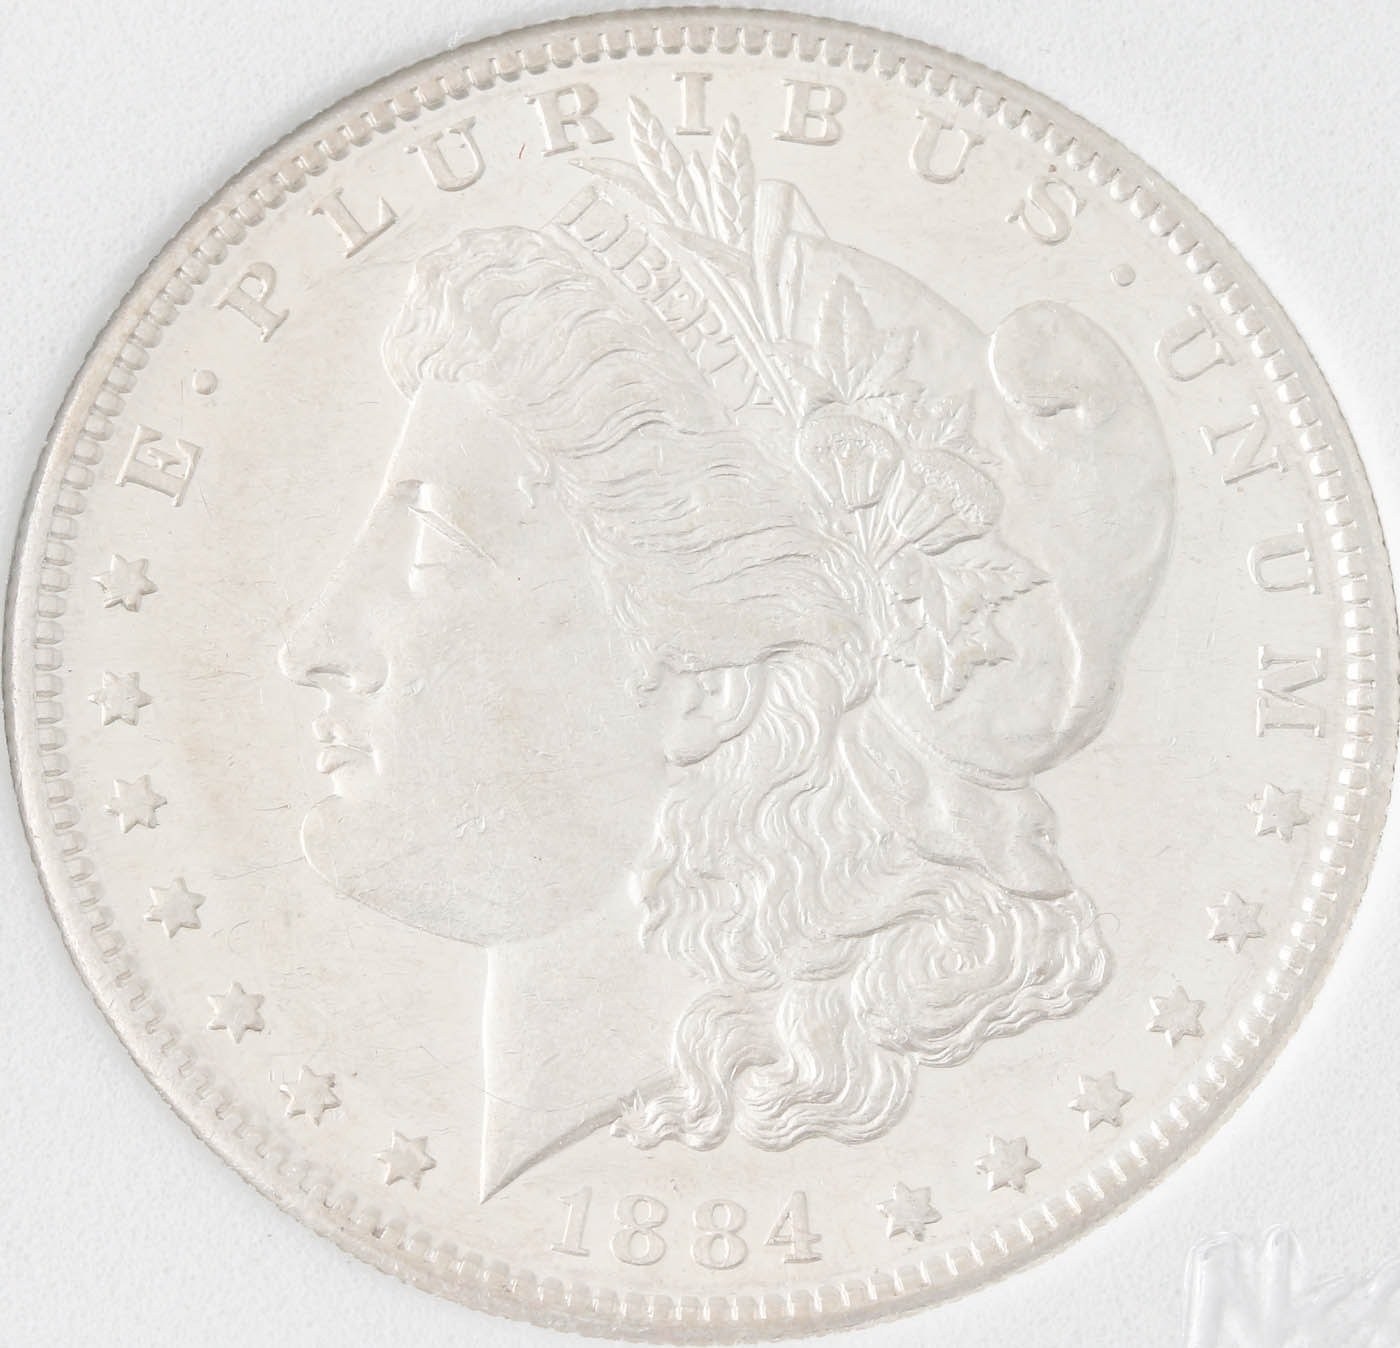 1884-S Silver Morgan Dollar